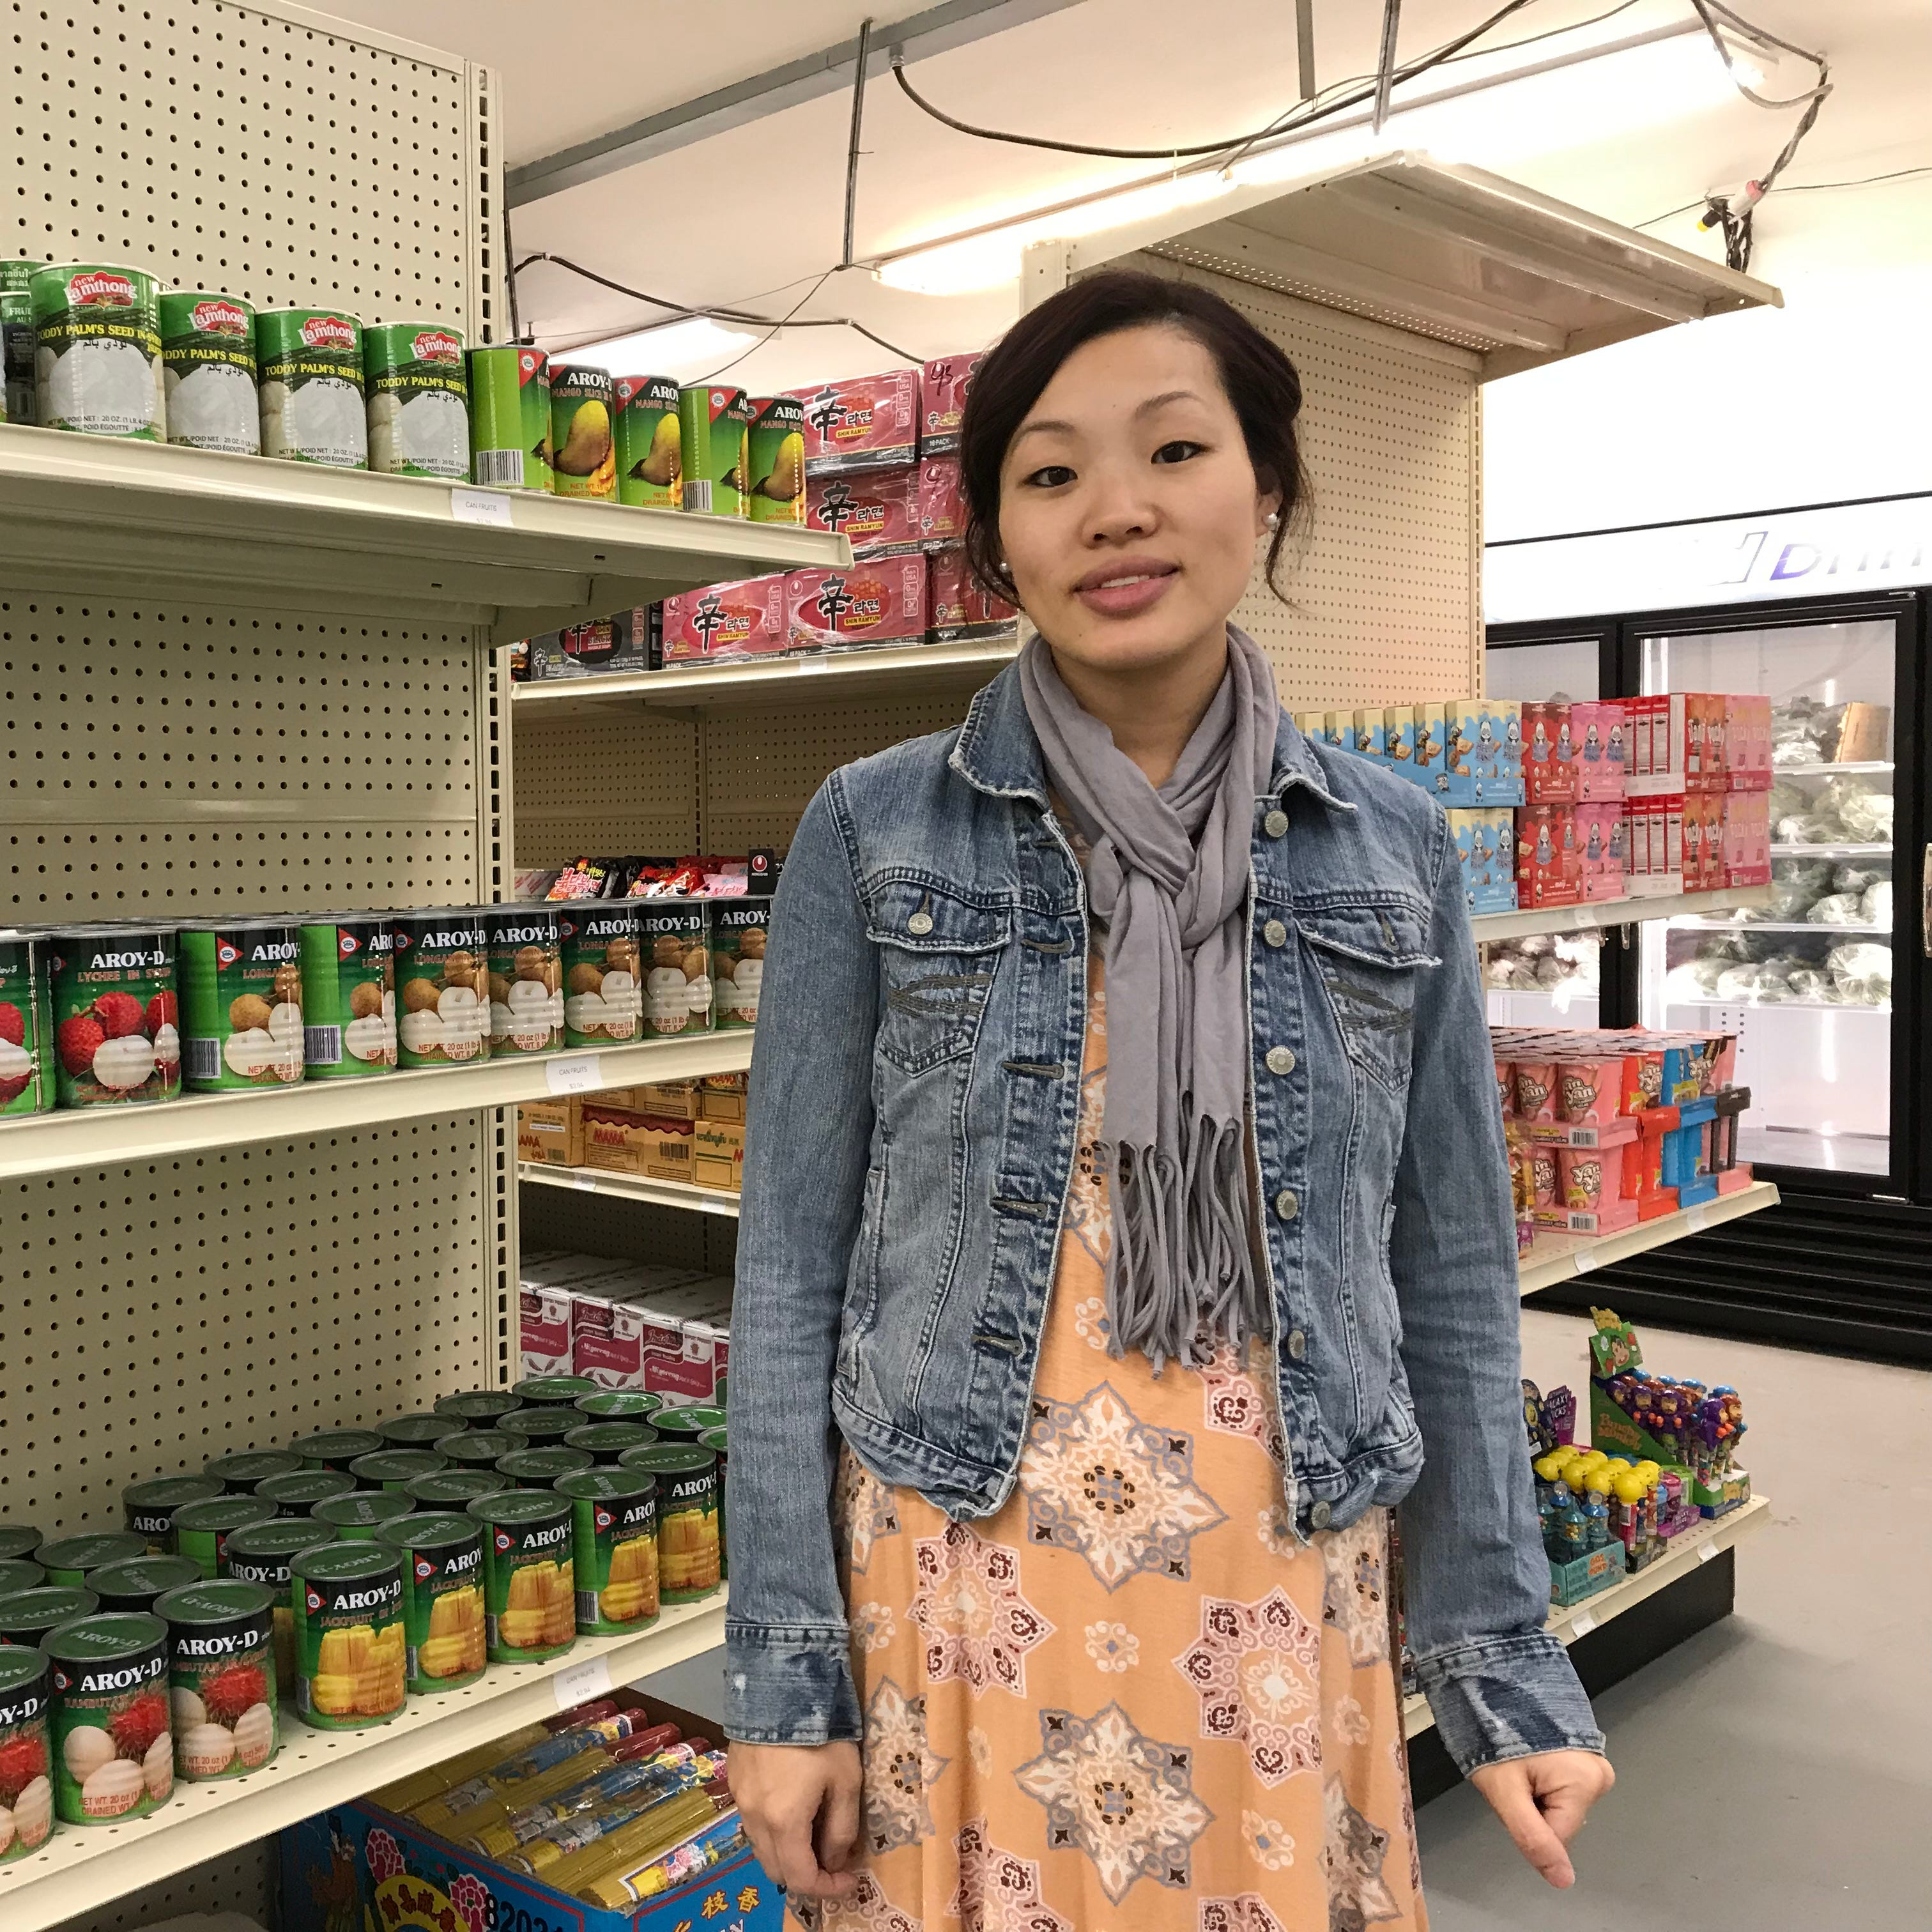 Loyal-Phant Market offers traditional Asian foods in Wisconsin Rapids